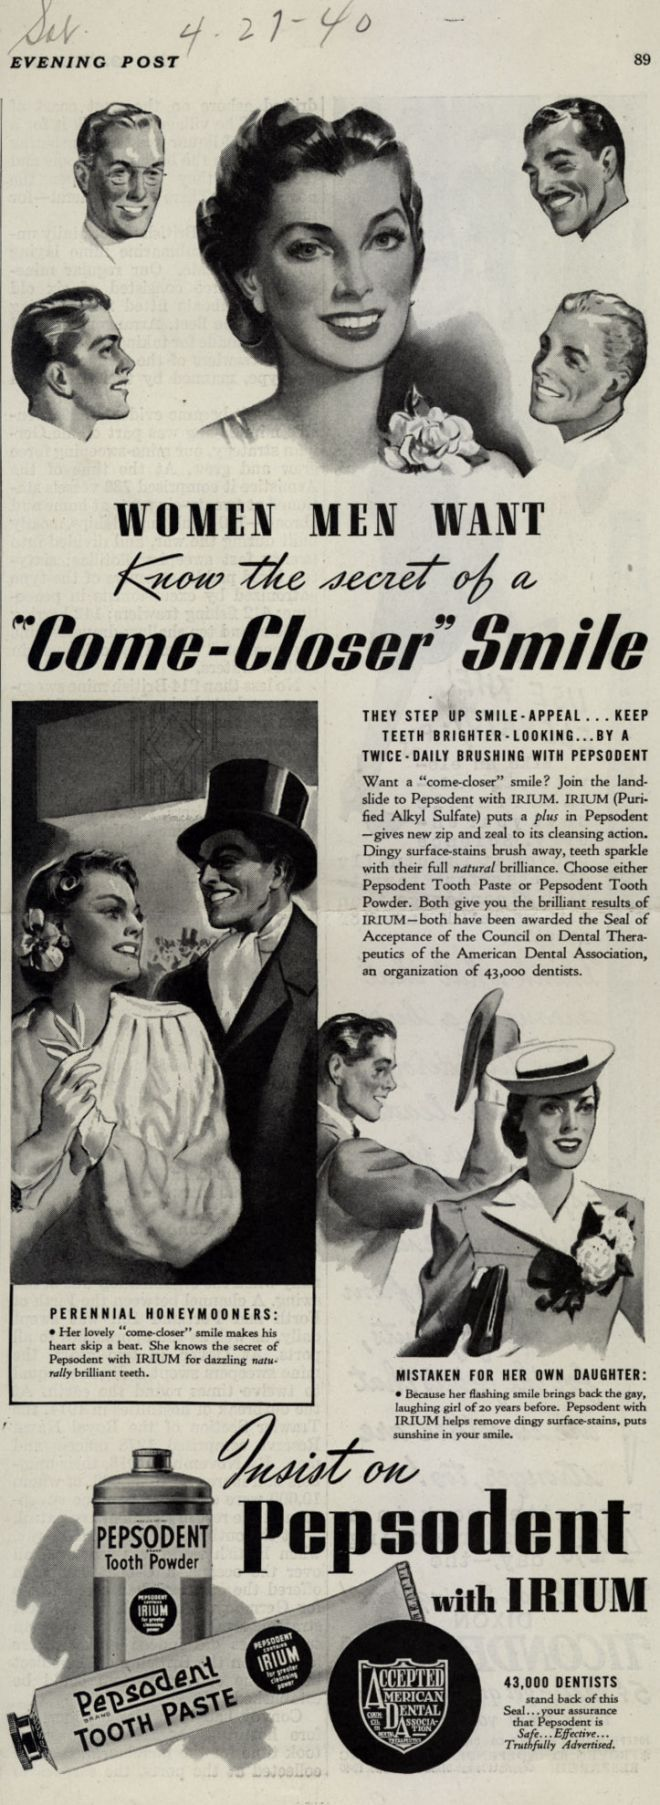 Vintage clothes fashion ads of the 1940s page 22 - Ladies Your Come Closer Smile Will Make His Heart Skip A Beat And 1950s Adsretro